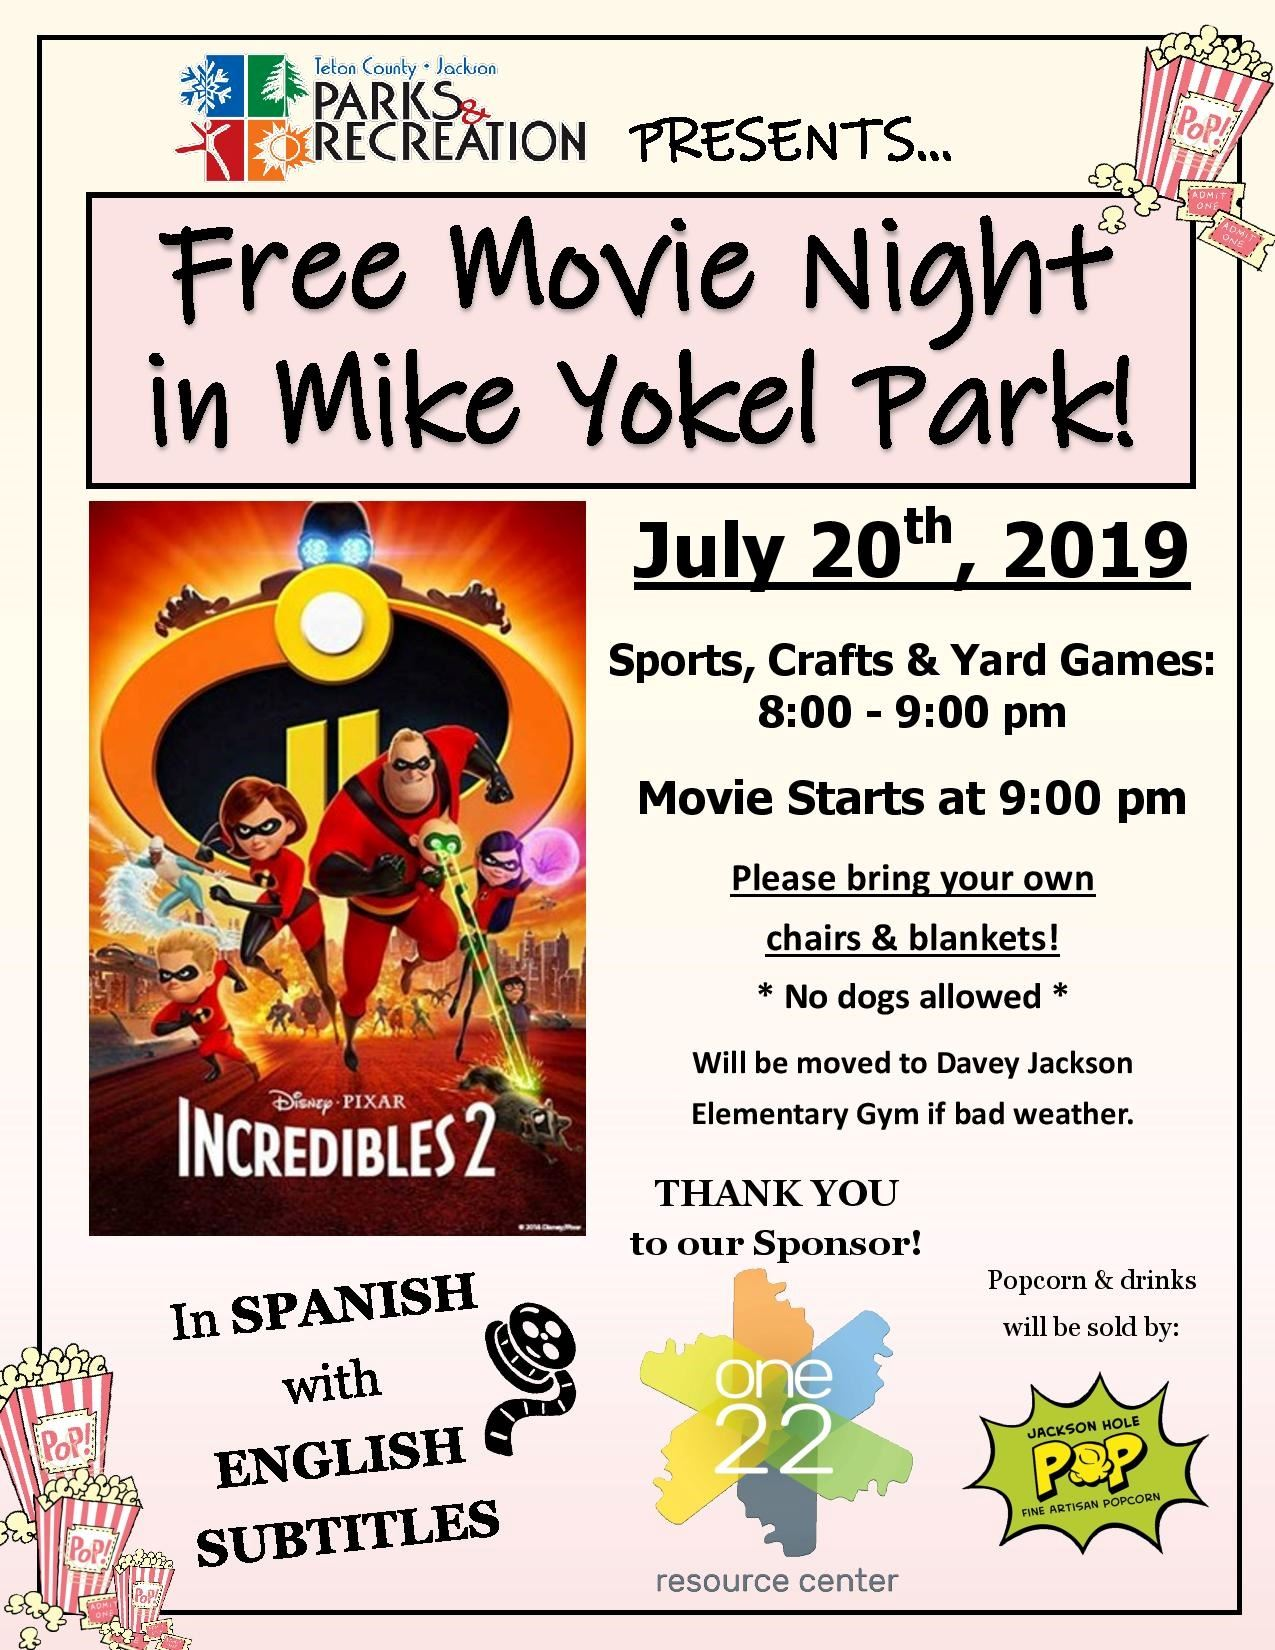 Mike Yokel Movie Night Flyer